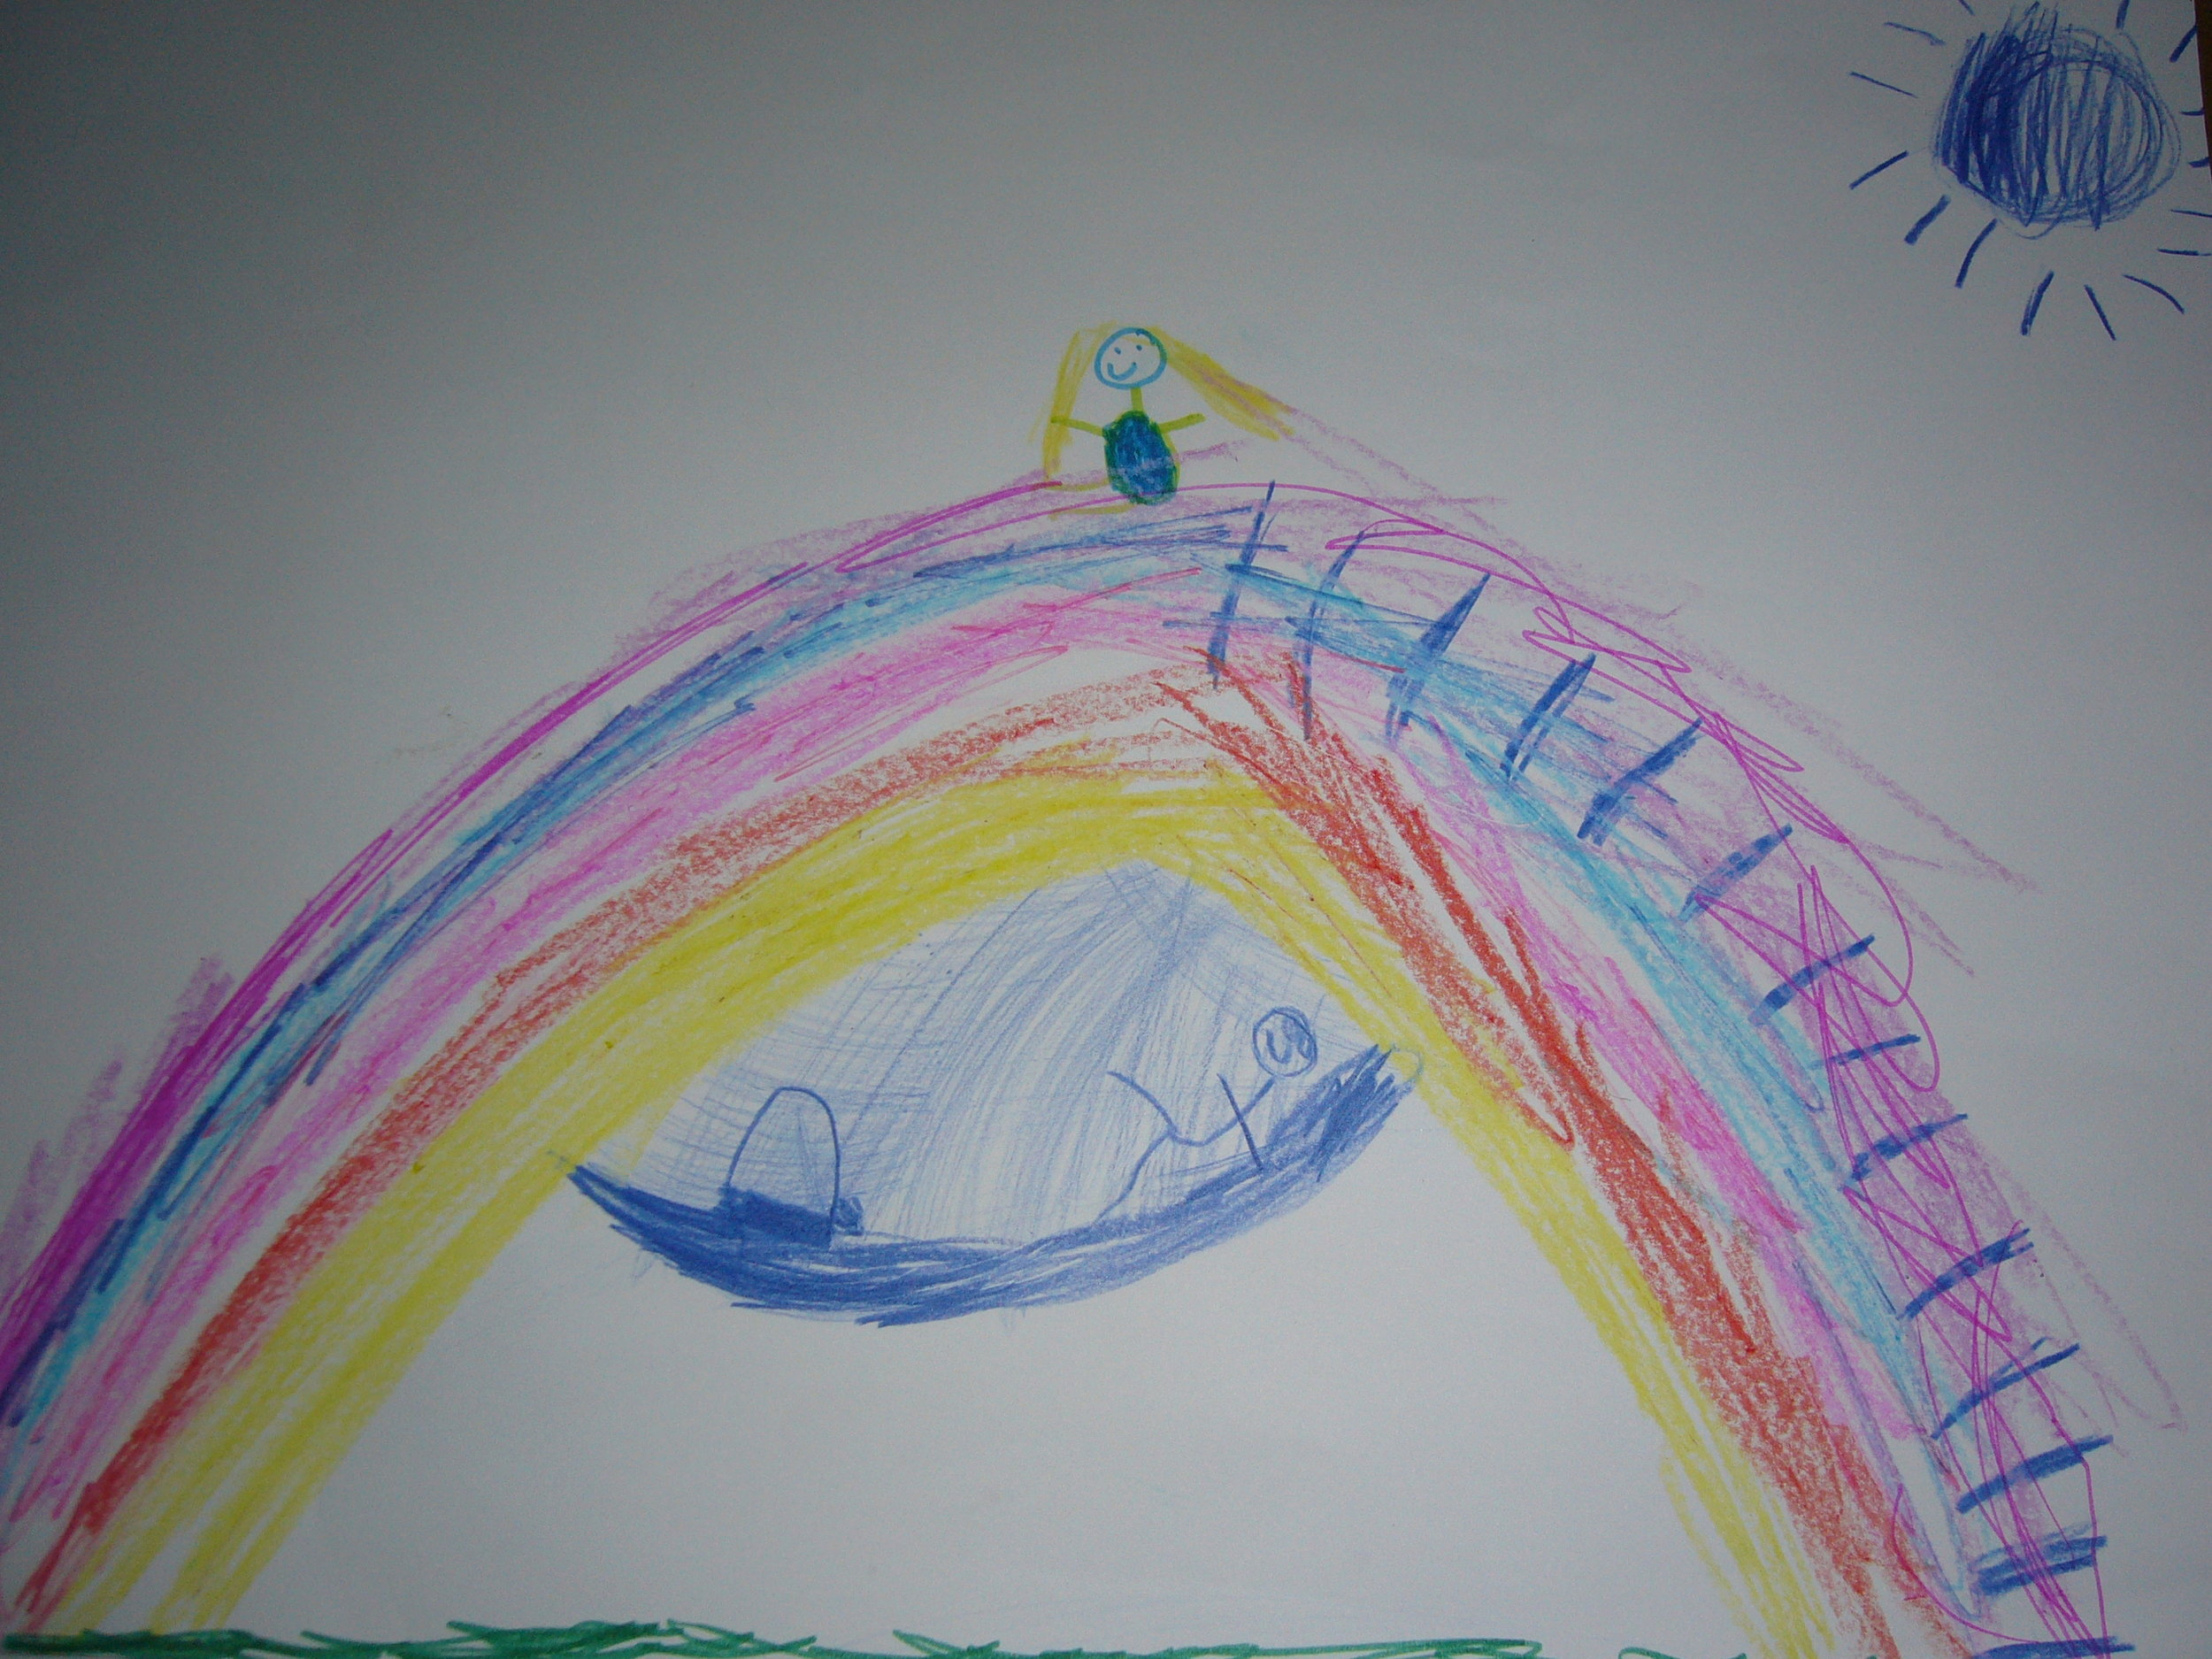 A drawing by a student of Our Lady Immaculate JNS, submitted as part of their meditation practice feedback